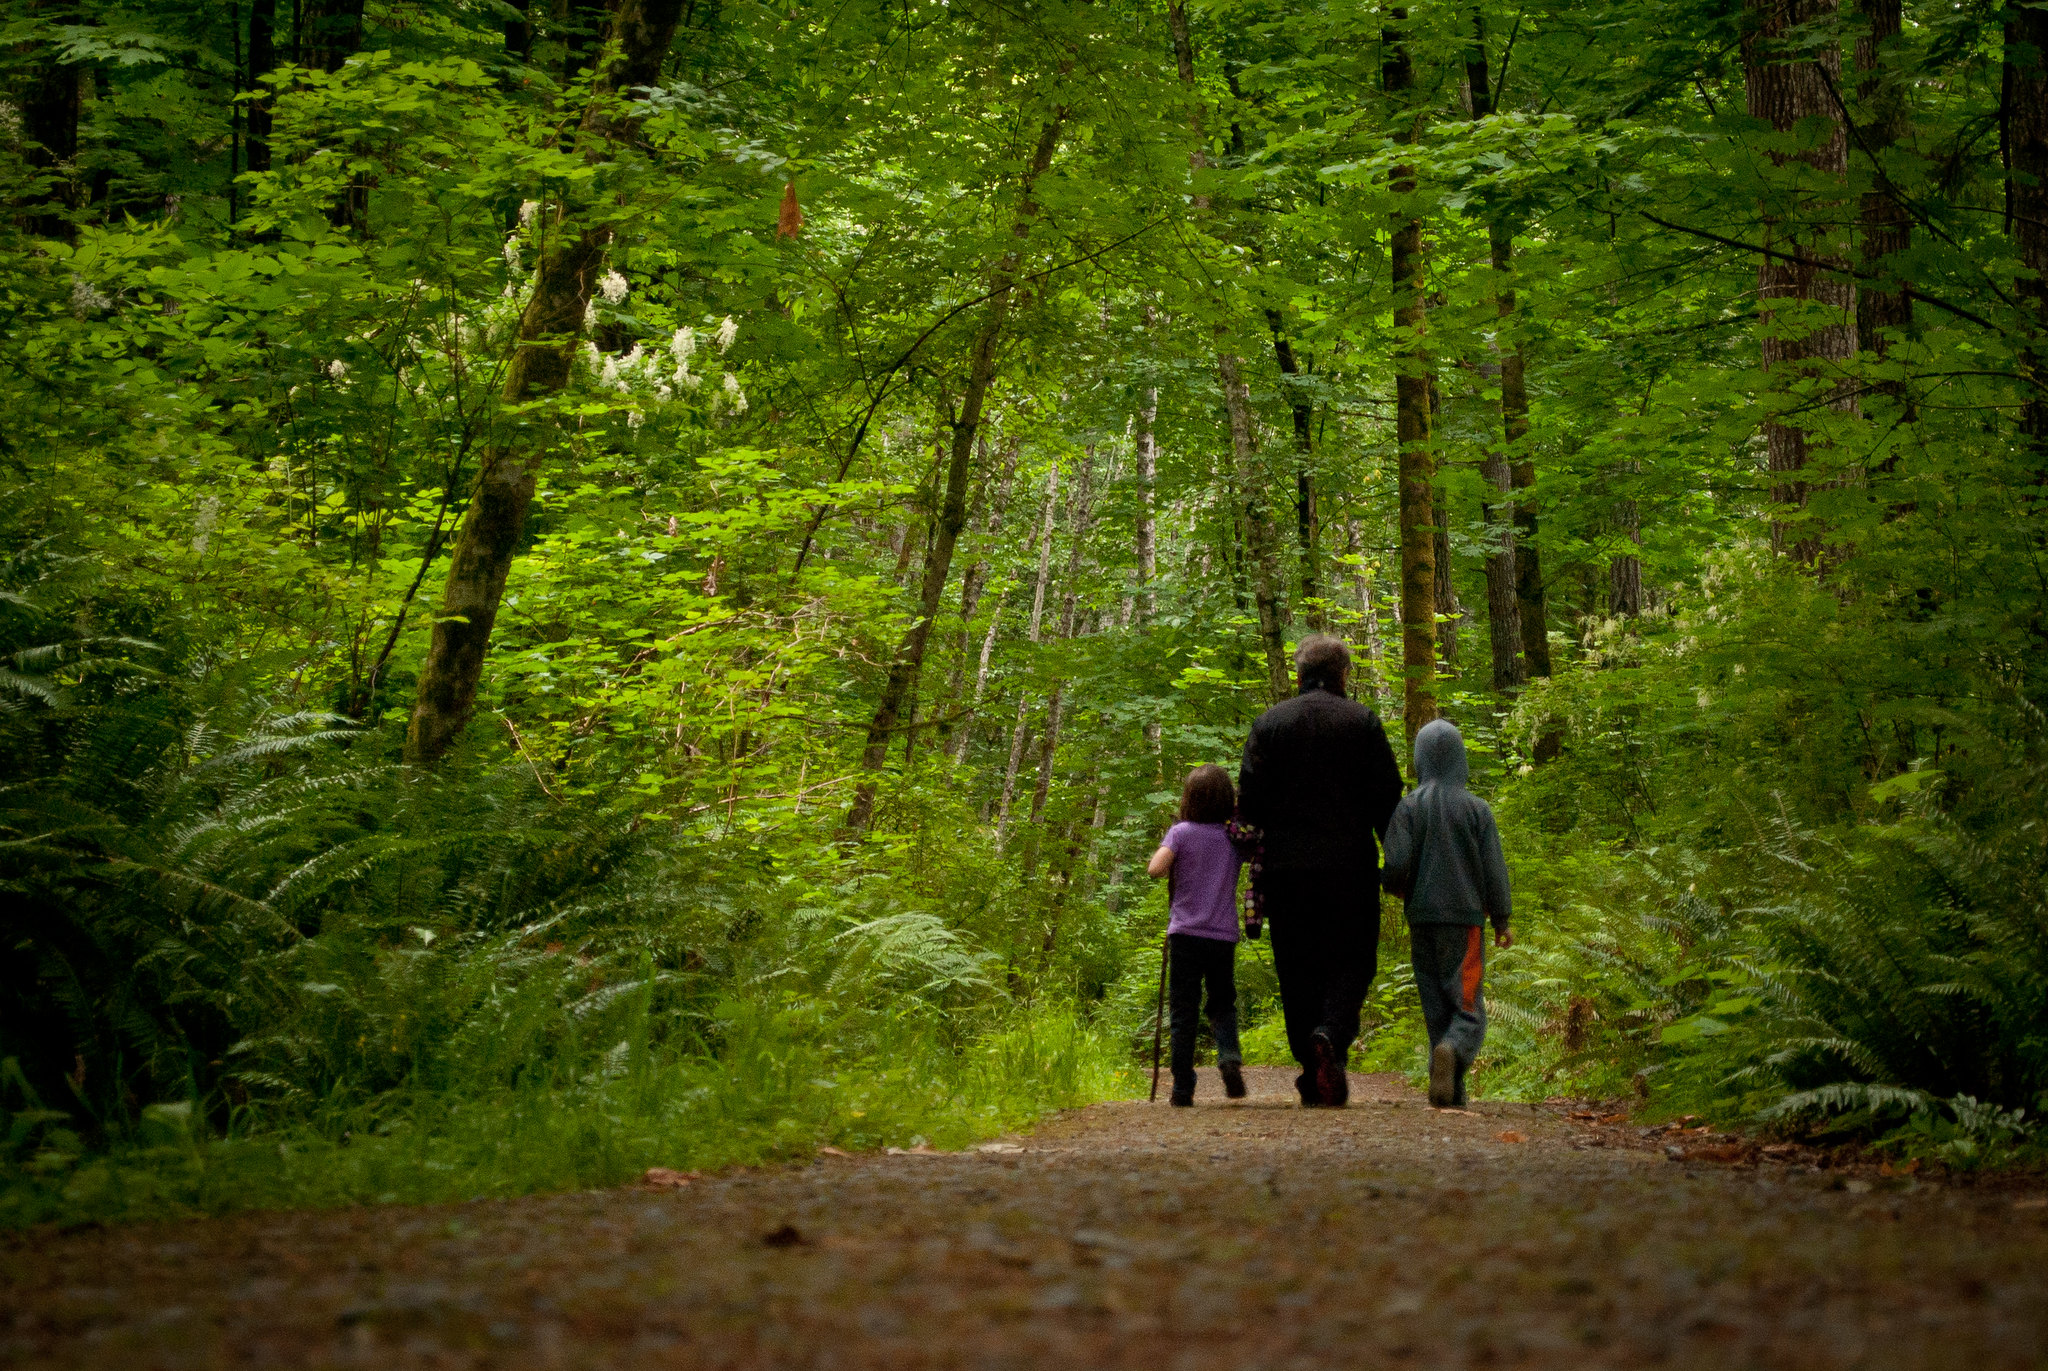 Walk in the forest. Two young children with their grandmother, BC.